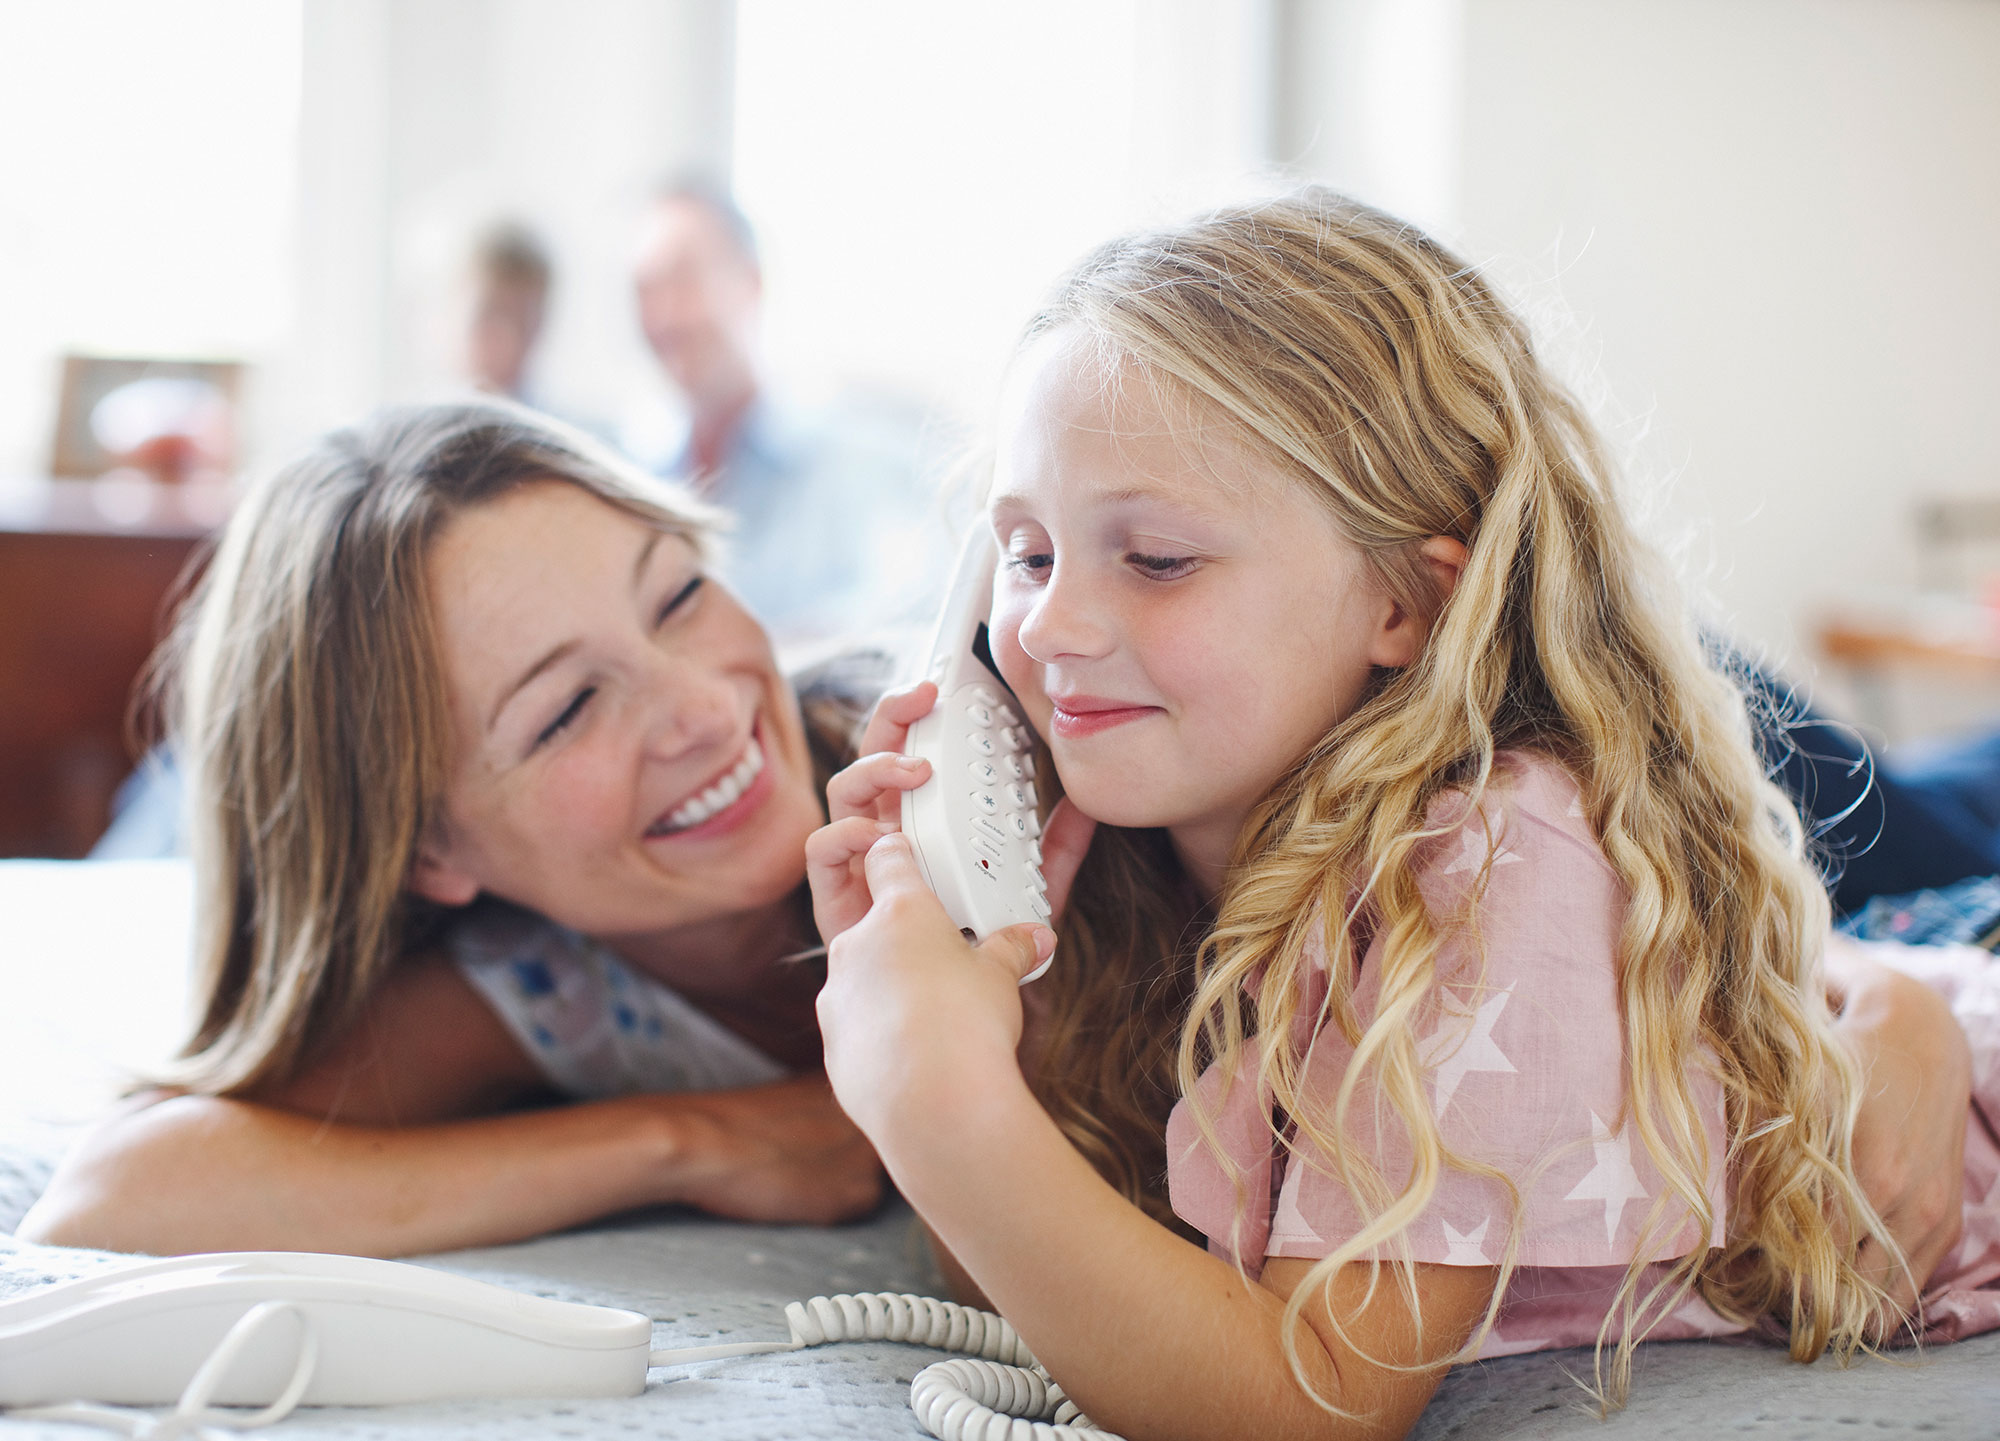 family-mother-daughter-landline-telephone-smiling